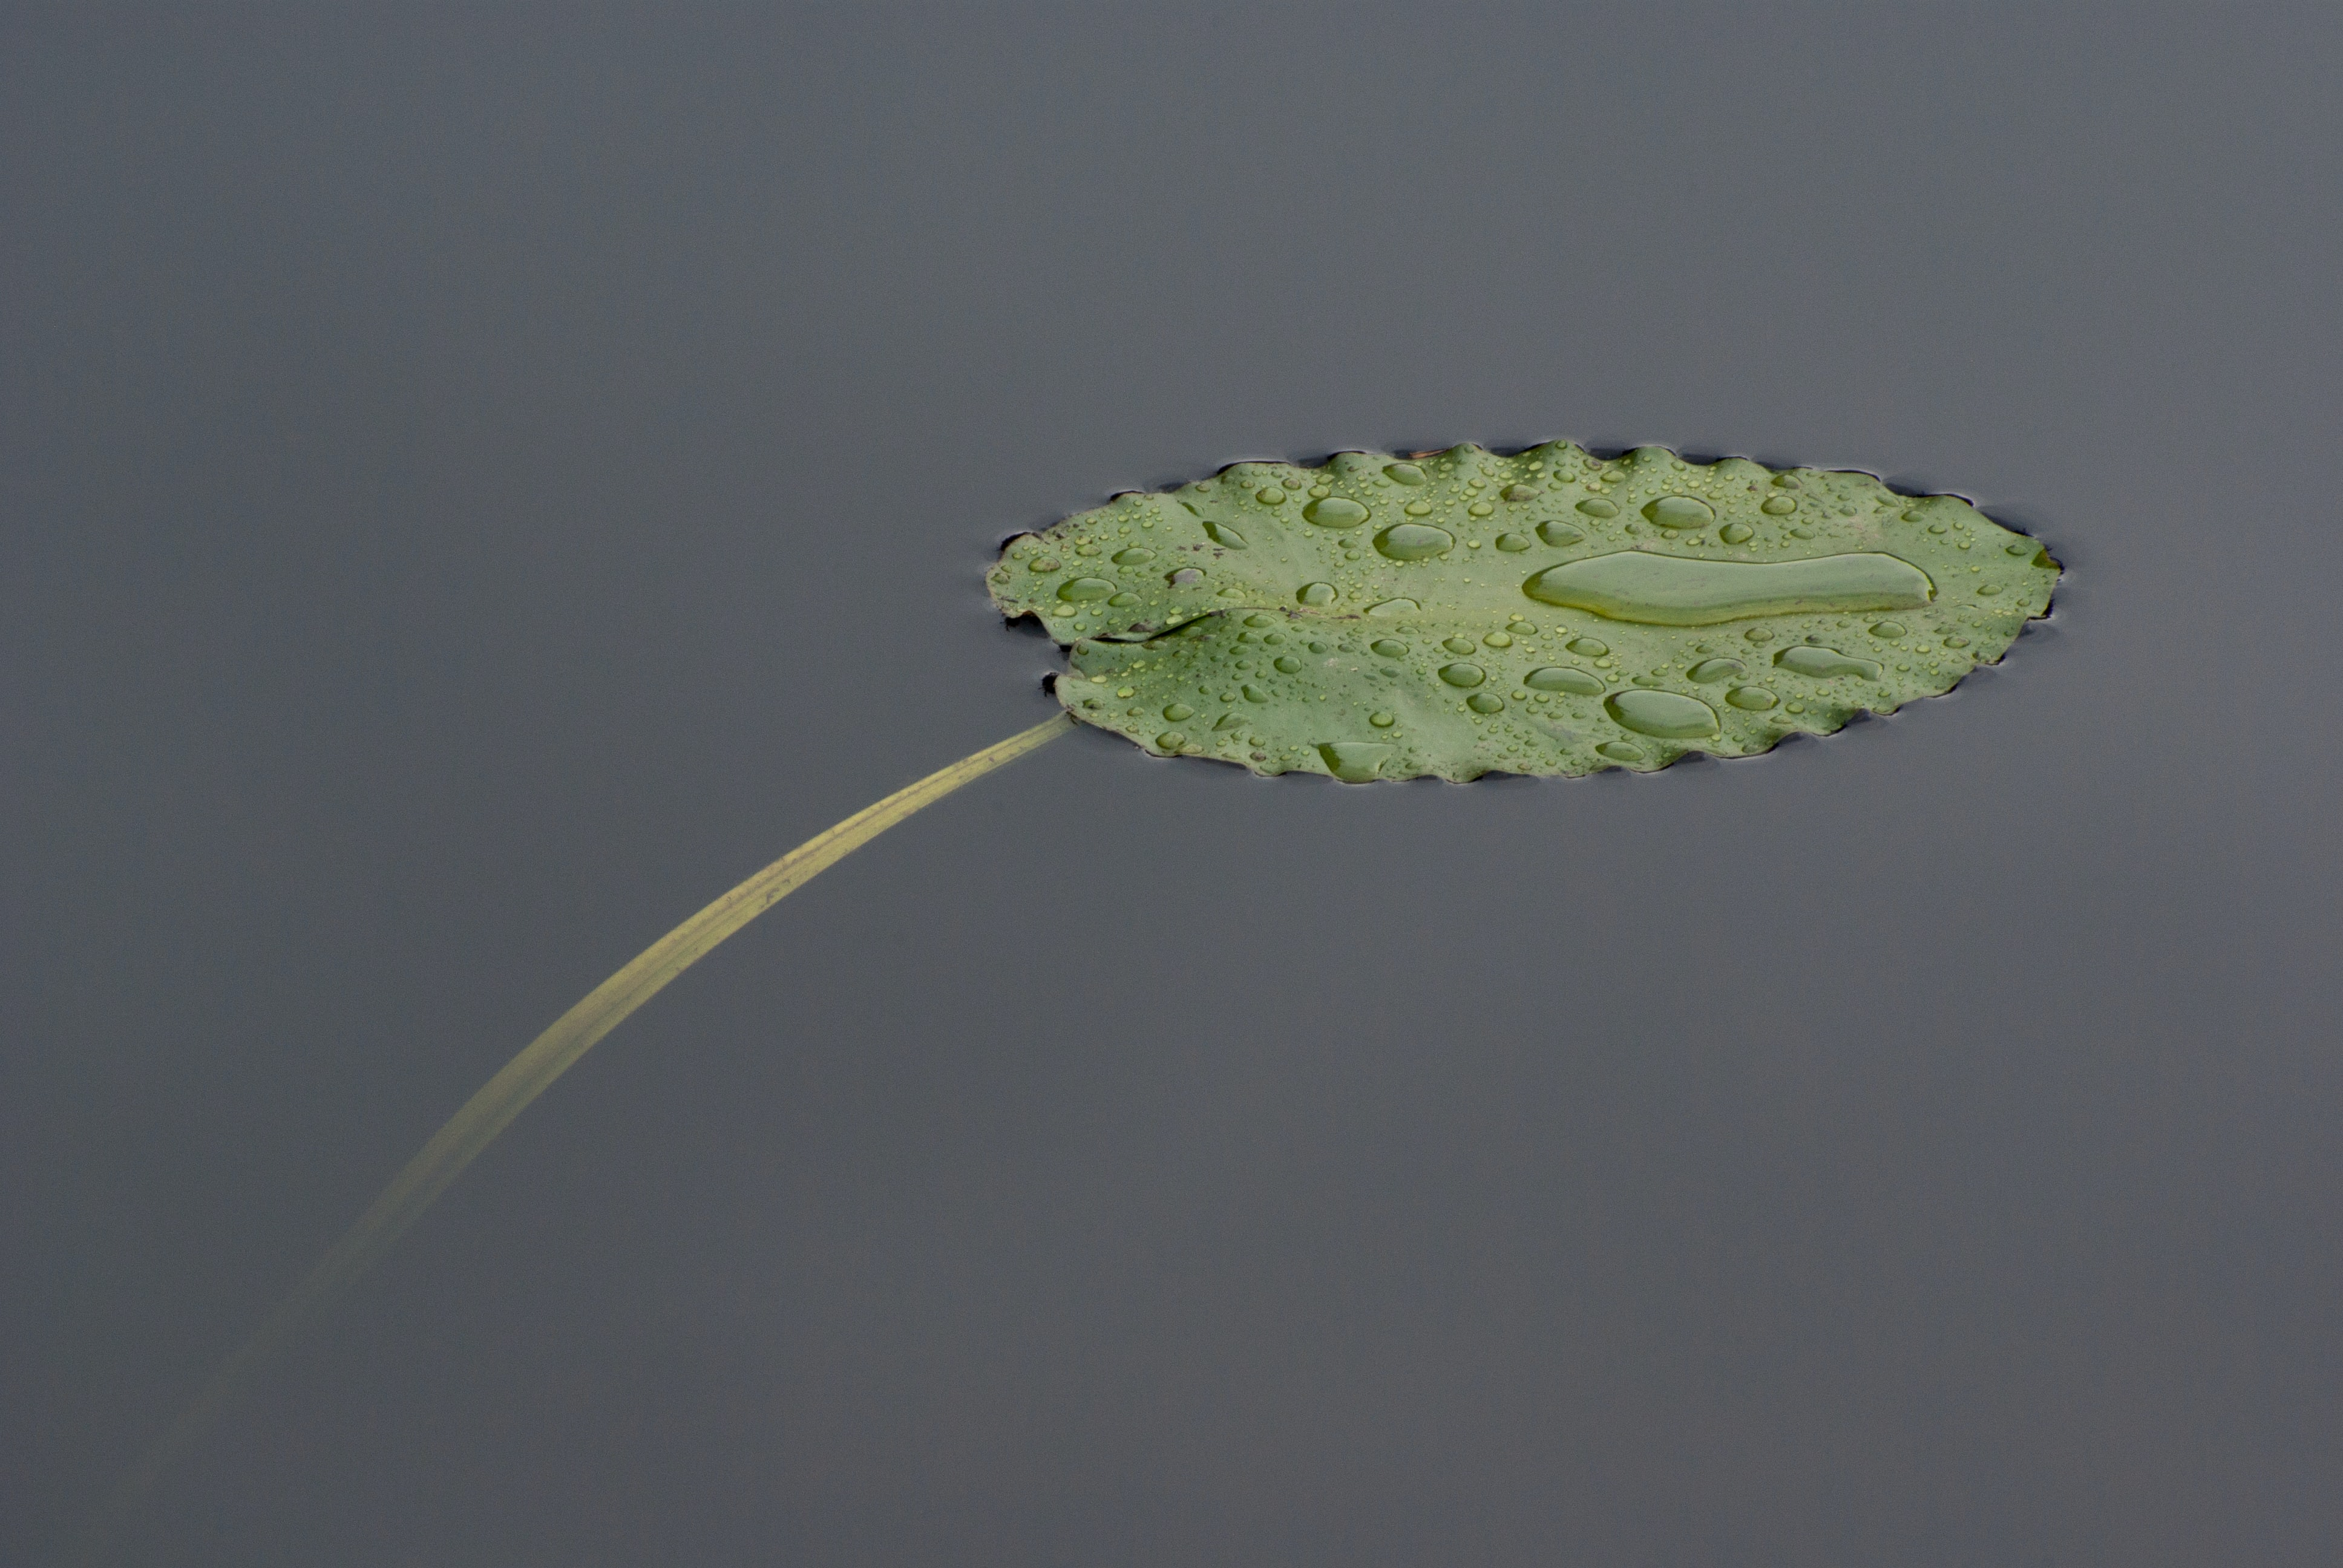 green leaf on body water with water droplets